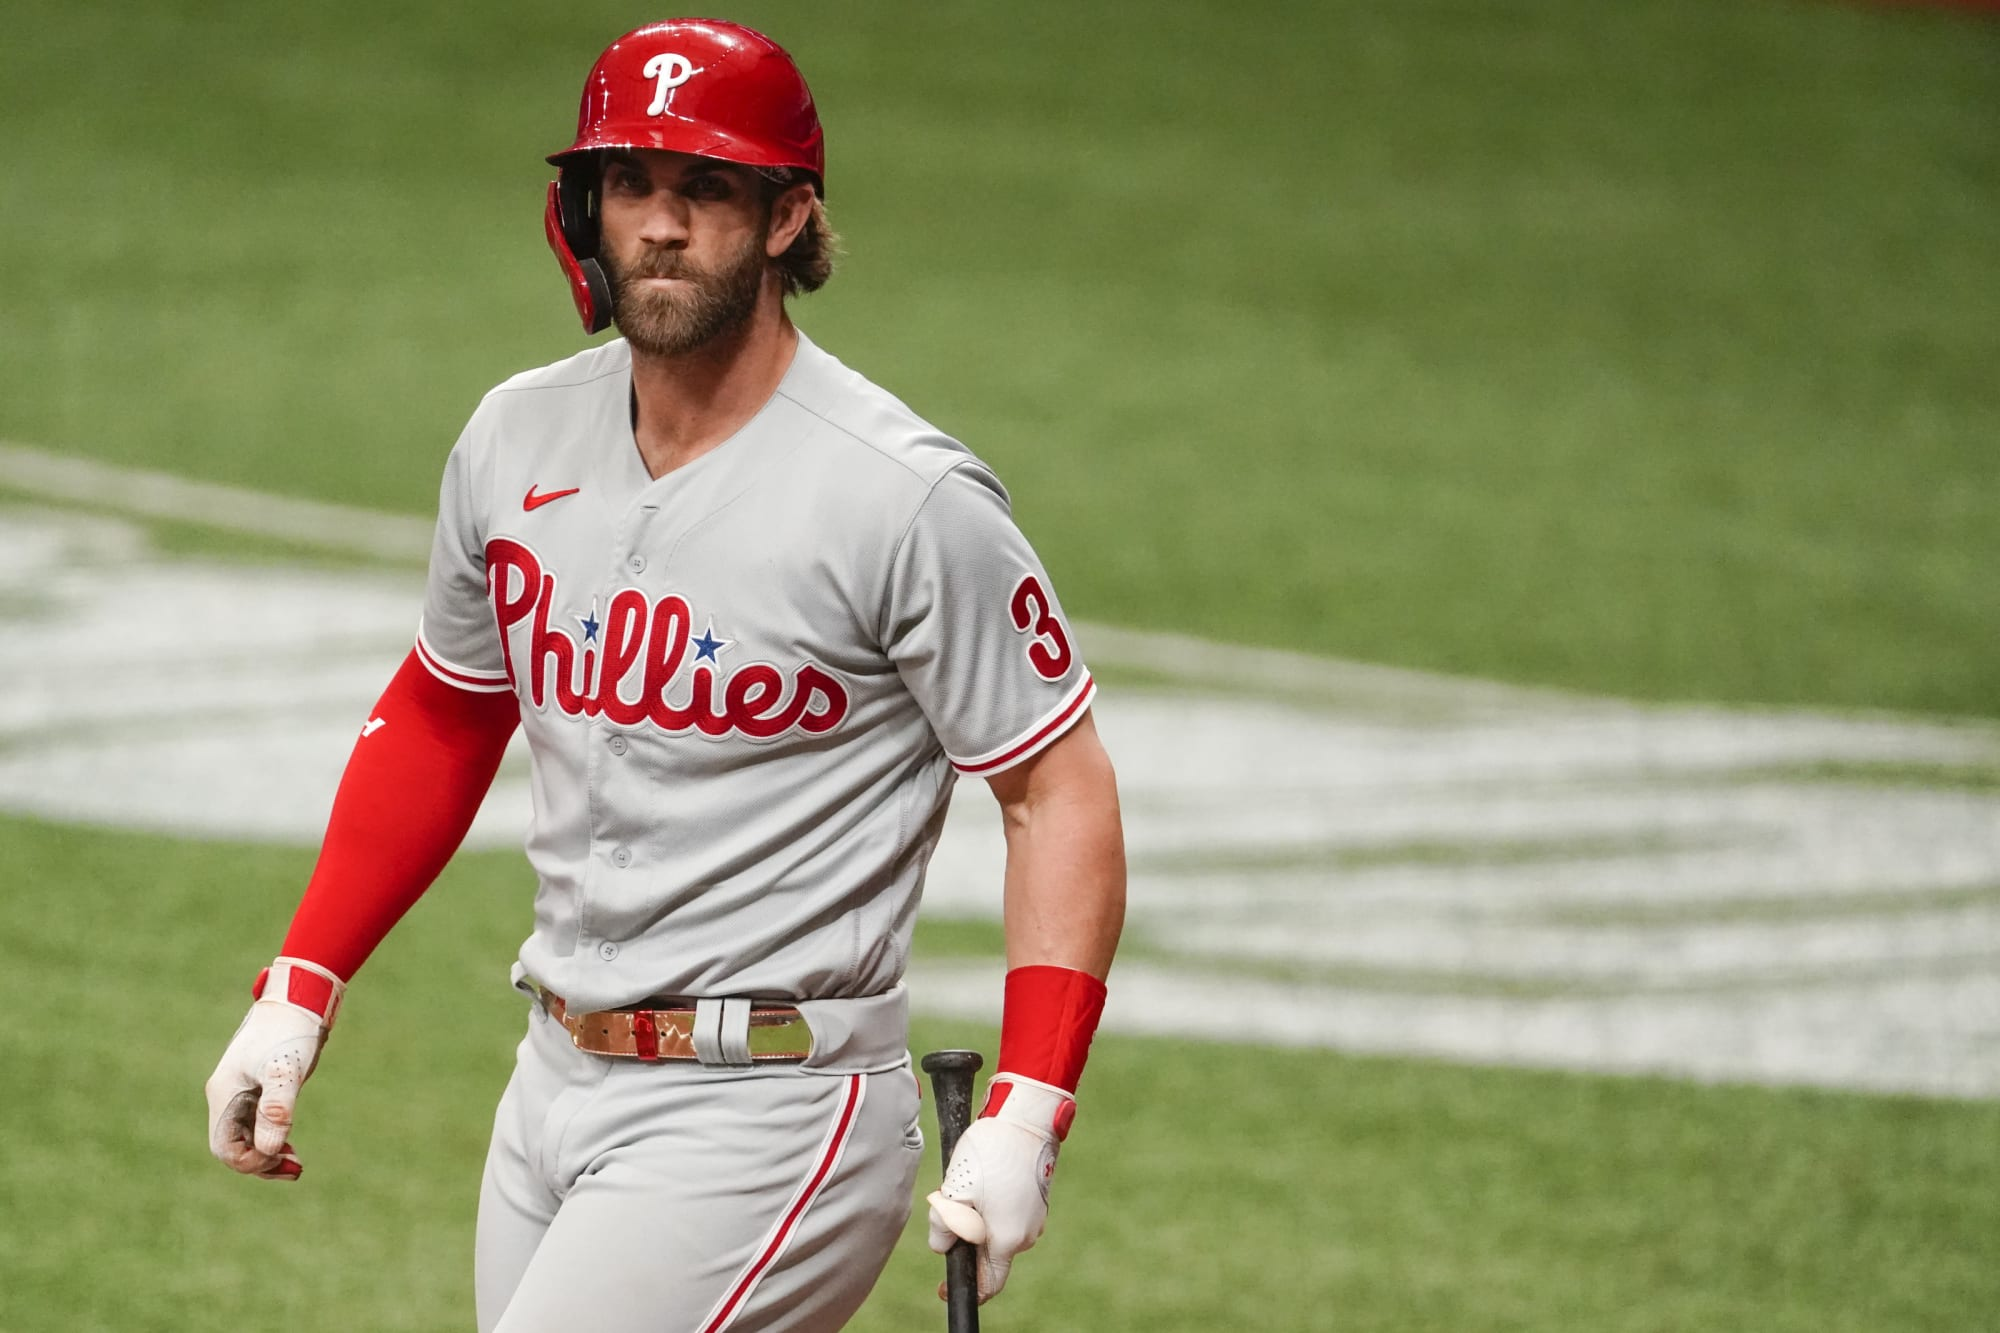 Phillies fans will love how Bryce Harper showed up to Spring Training